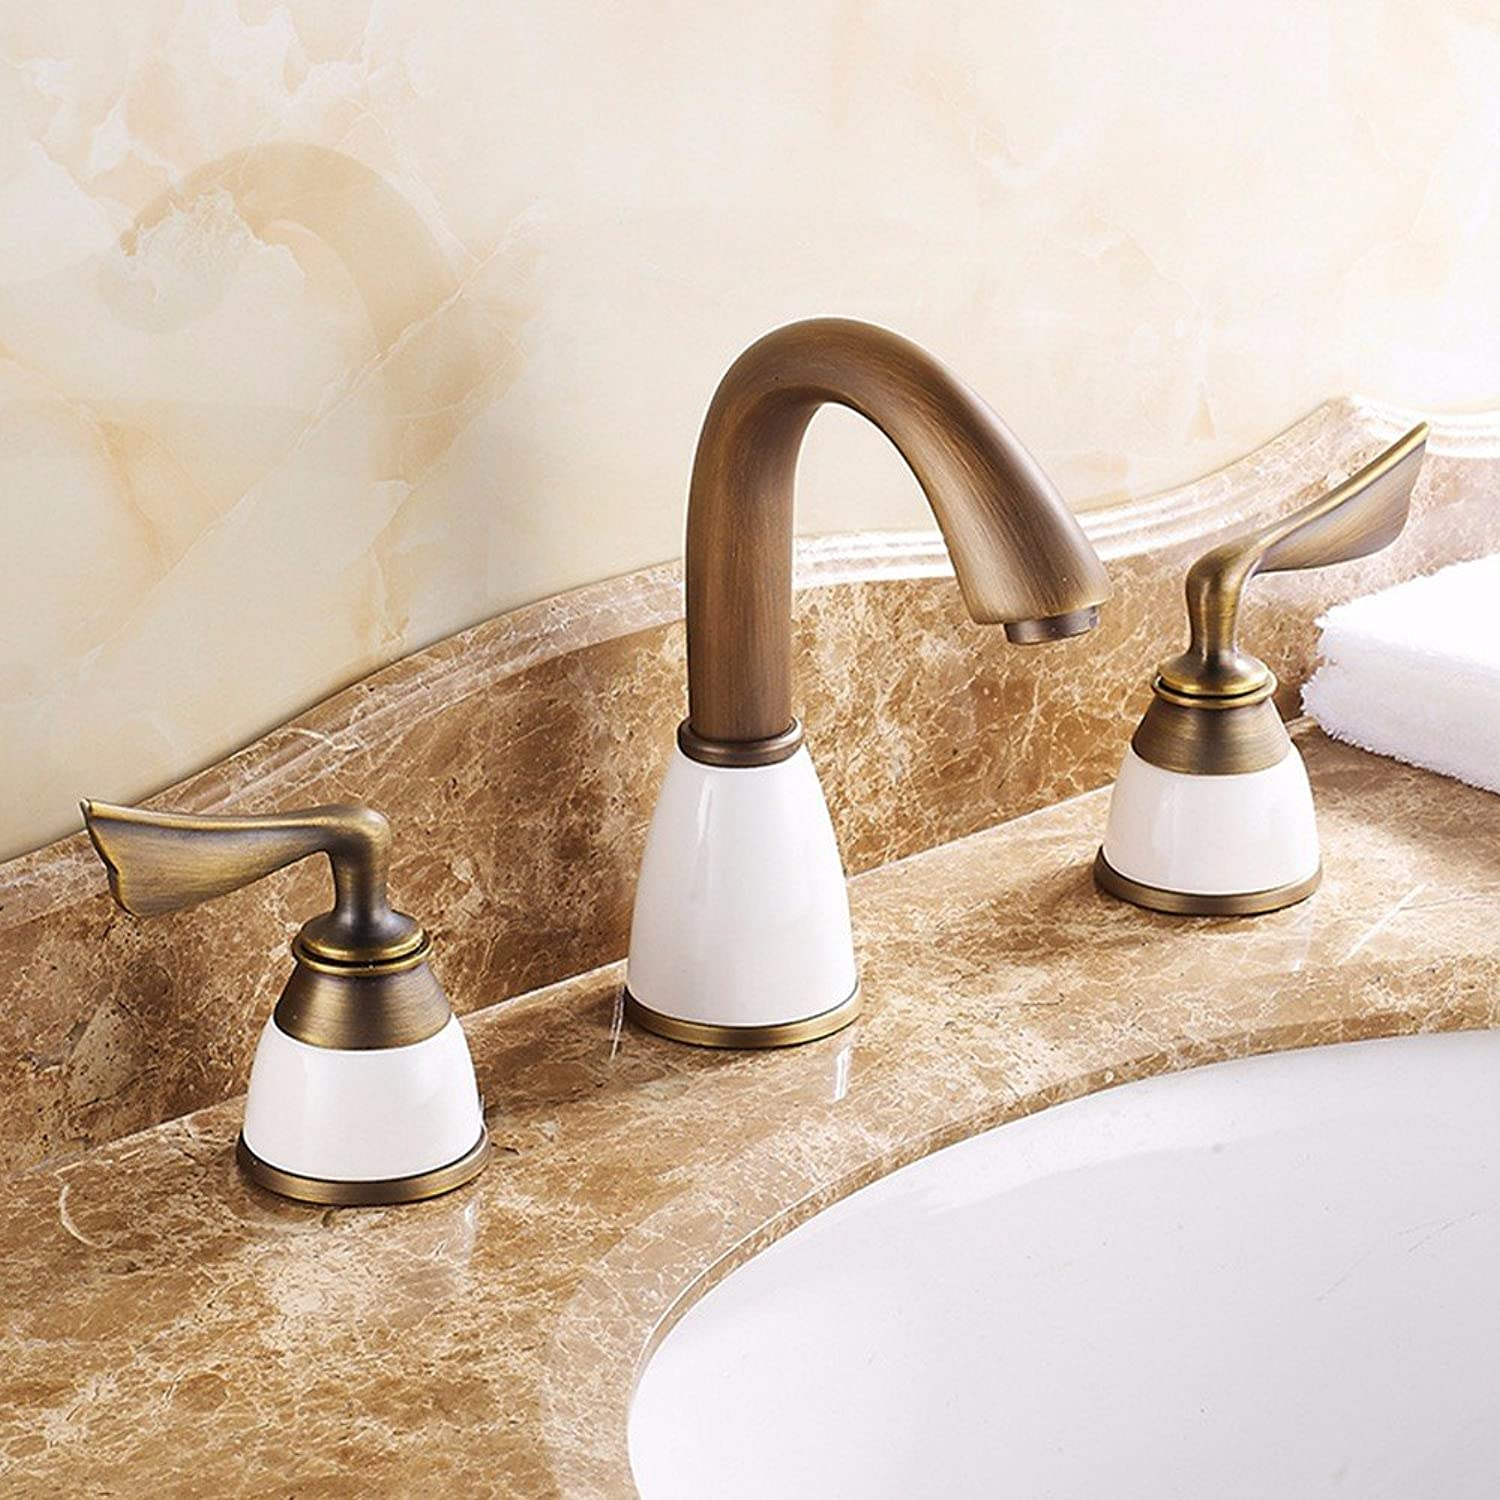 USDFJN Faucet Kitchen Bathroomthe Three Holes In The Copper-Plated